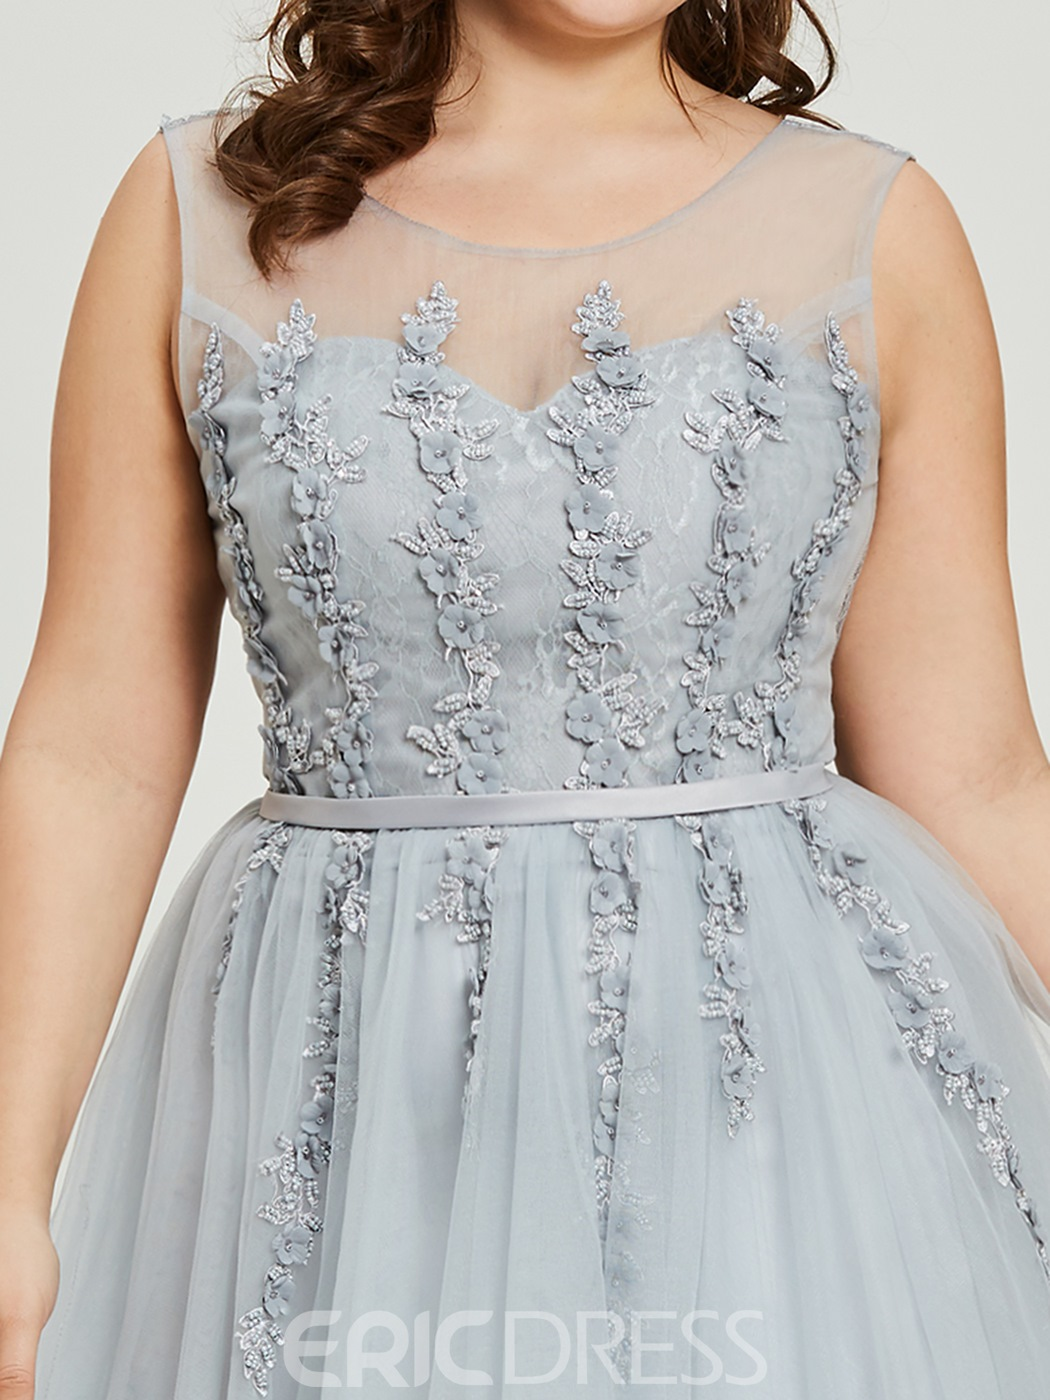 Ericdress Plus Size Scoop Neck Beading A Line Prom Dress